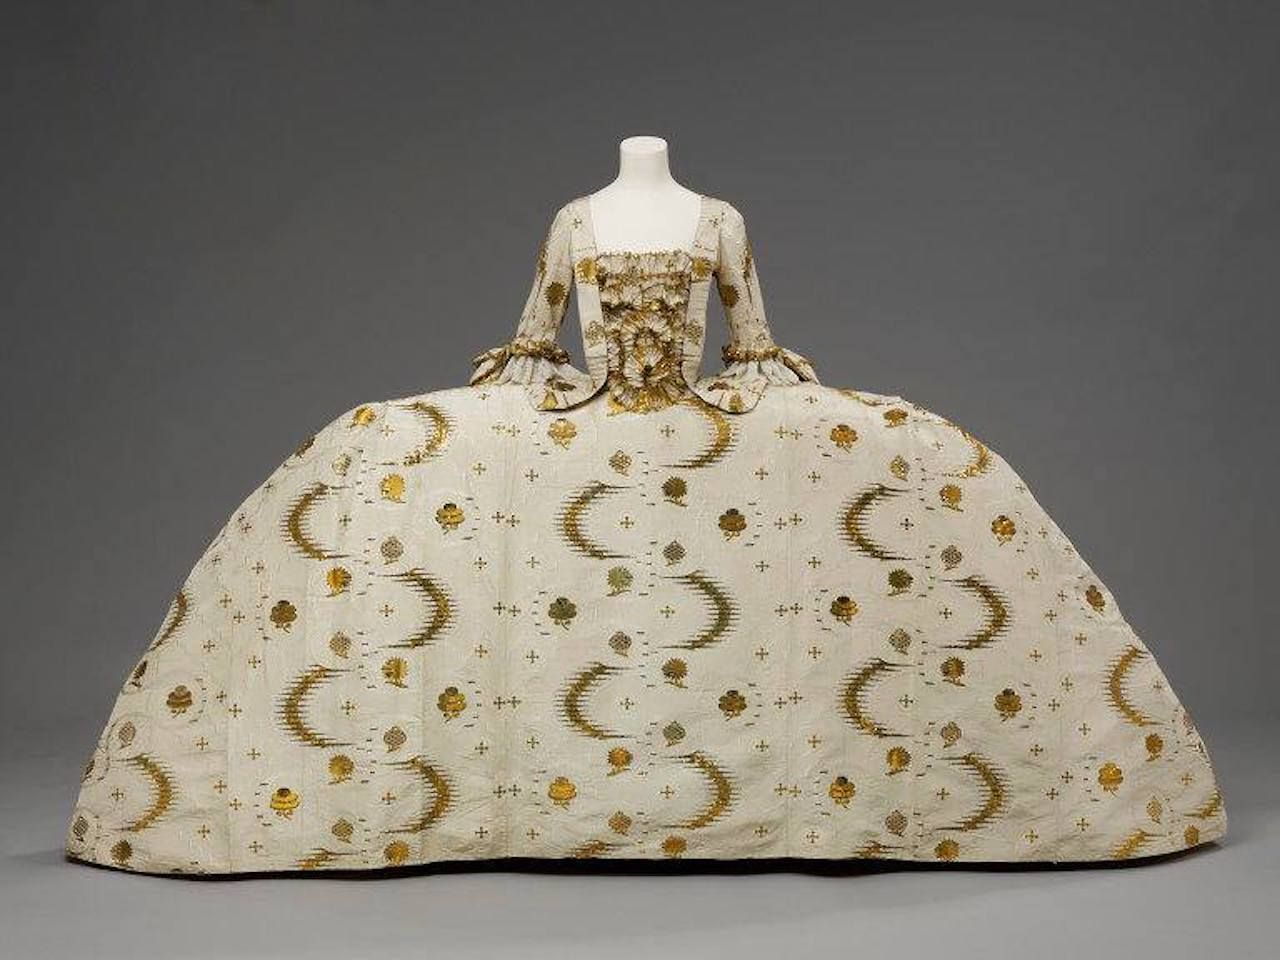 Mantua dress at the Victoria and Albert Museum London